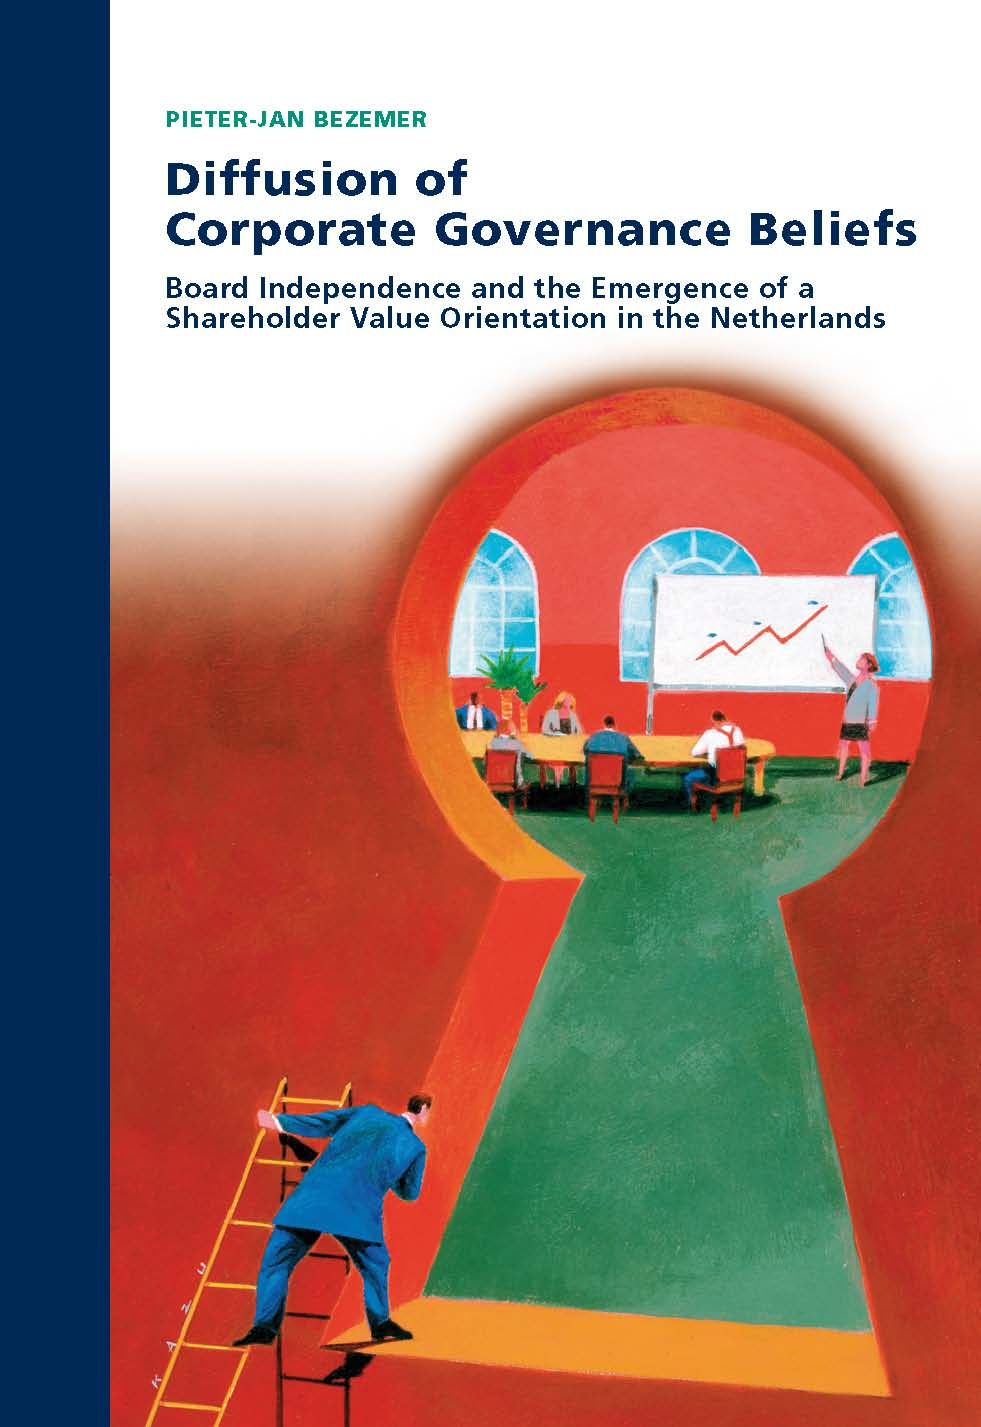 Diffusion of Corporate Governance Beliefs: Board independence and the emergence of a shareholder value orientation in the Netherlands